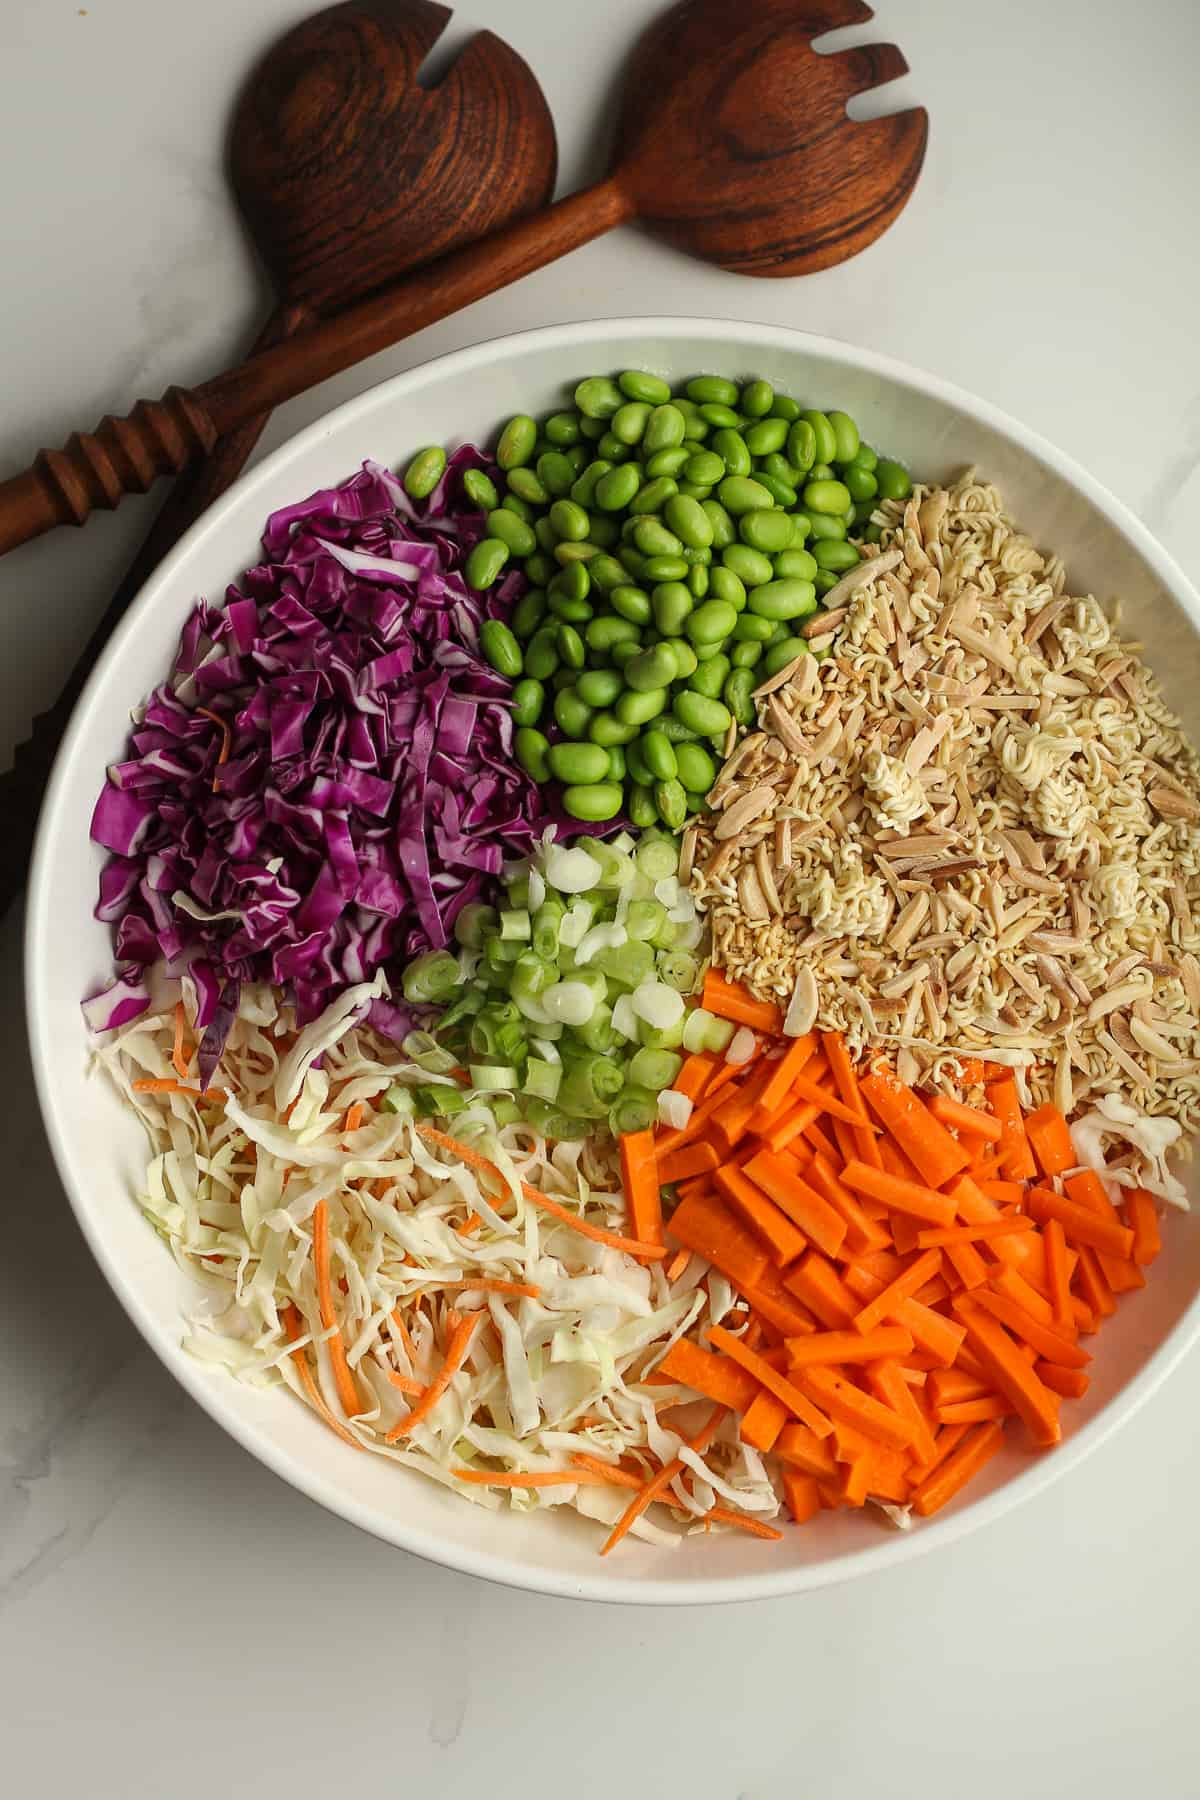 A bowl of the salad divided by ingredient.